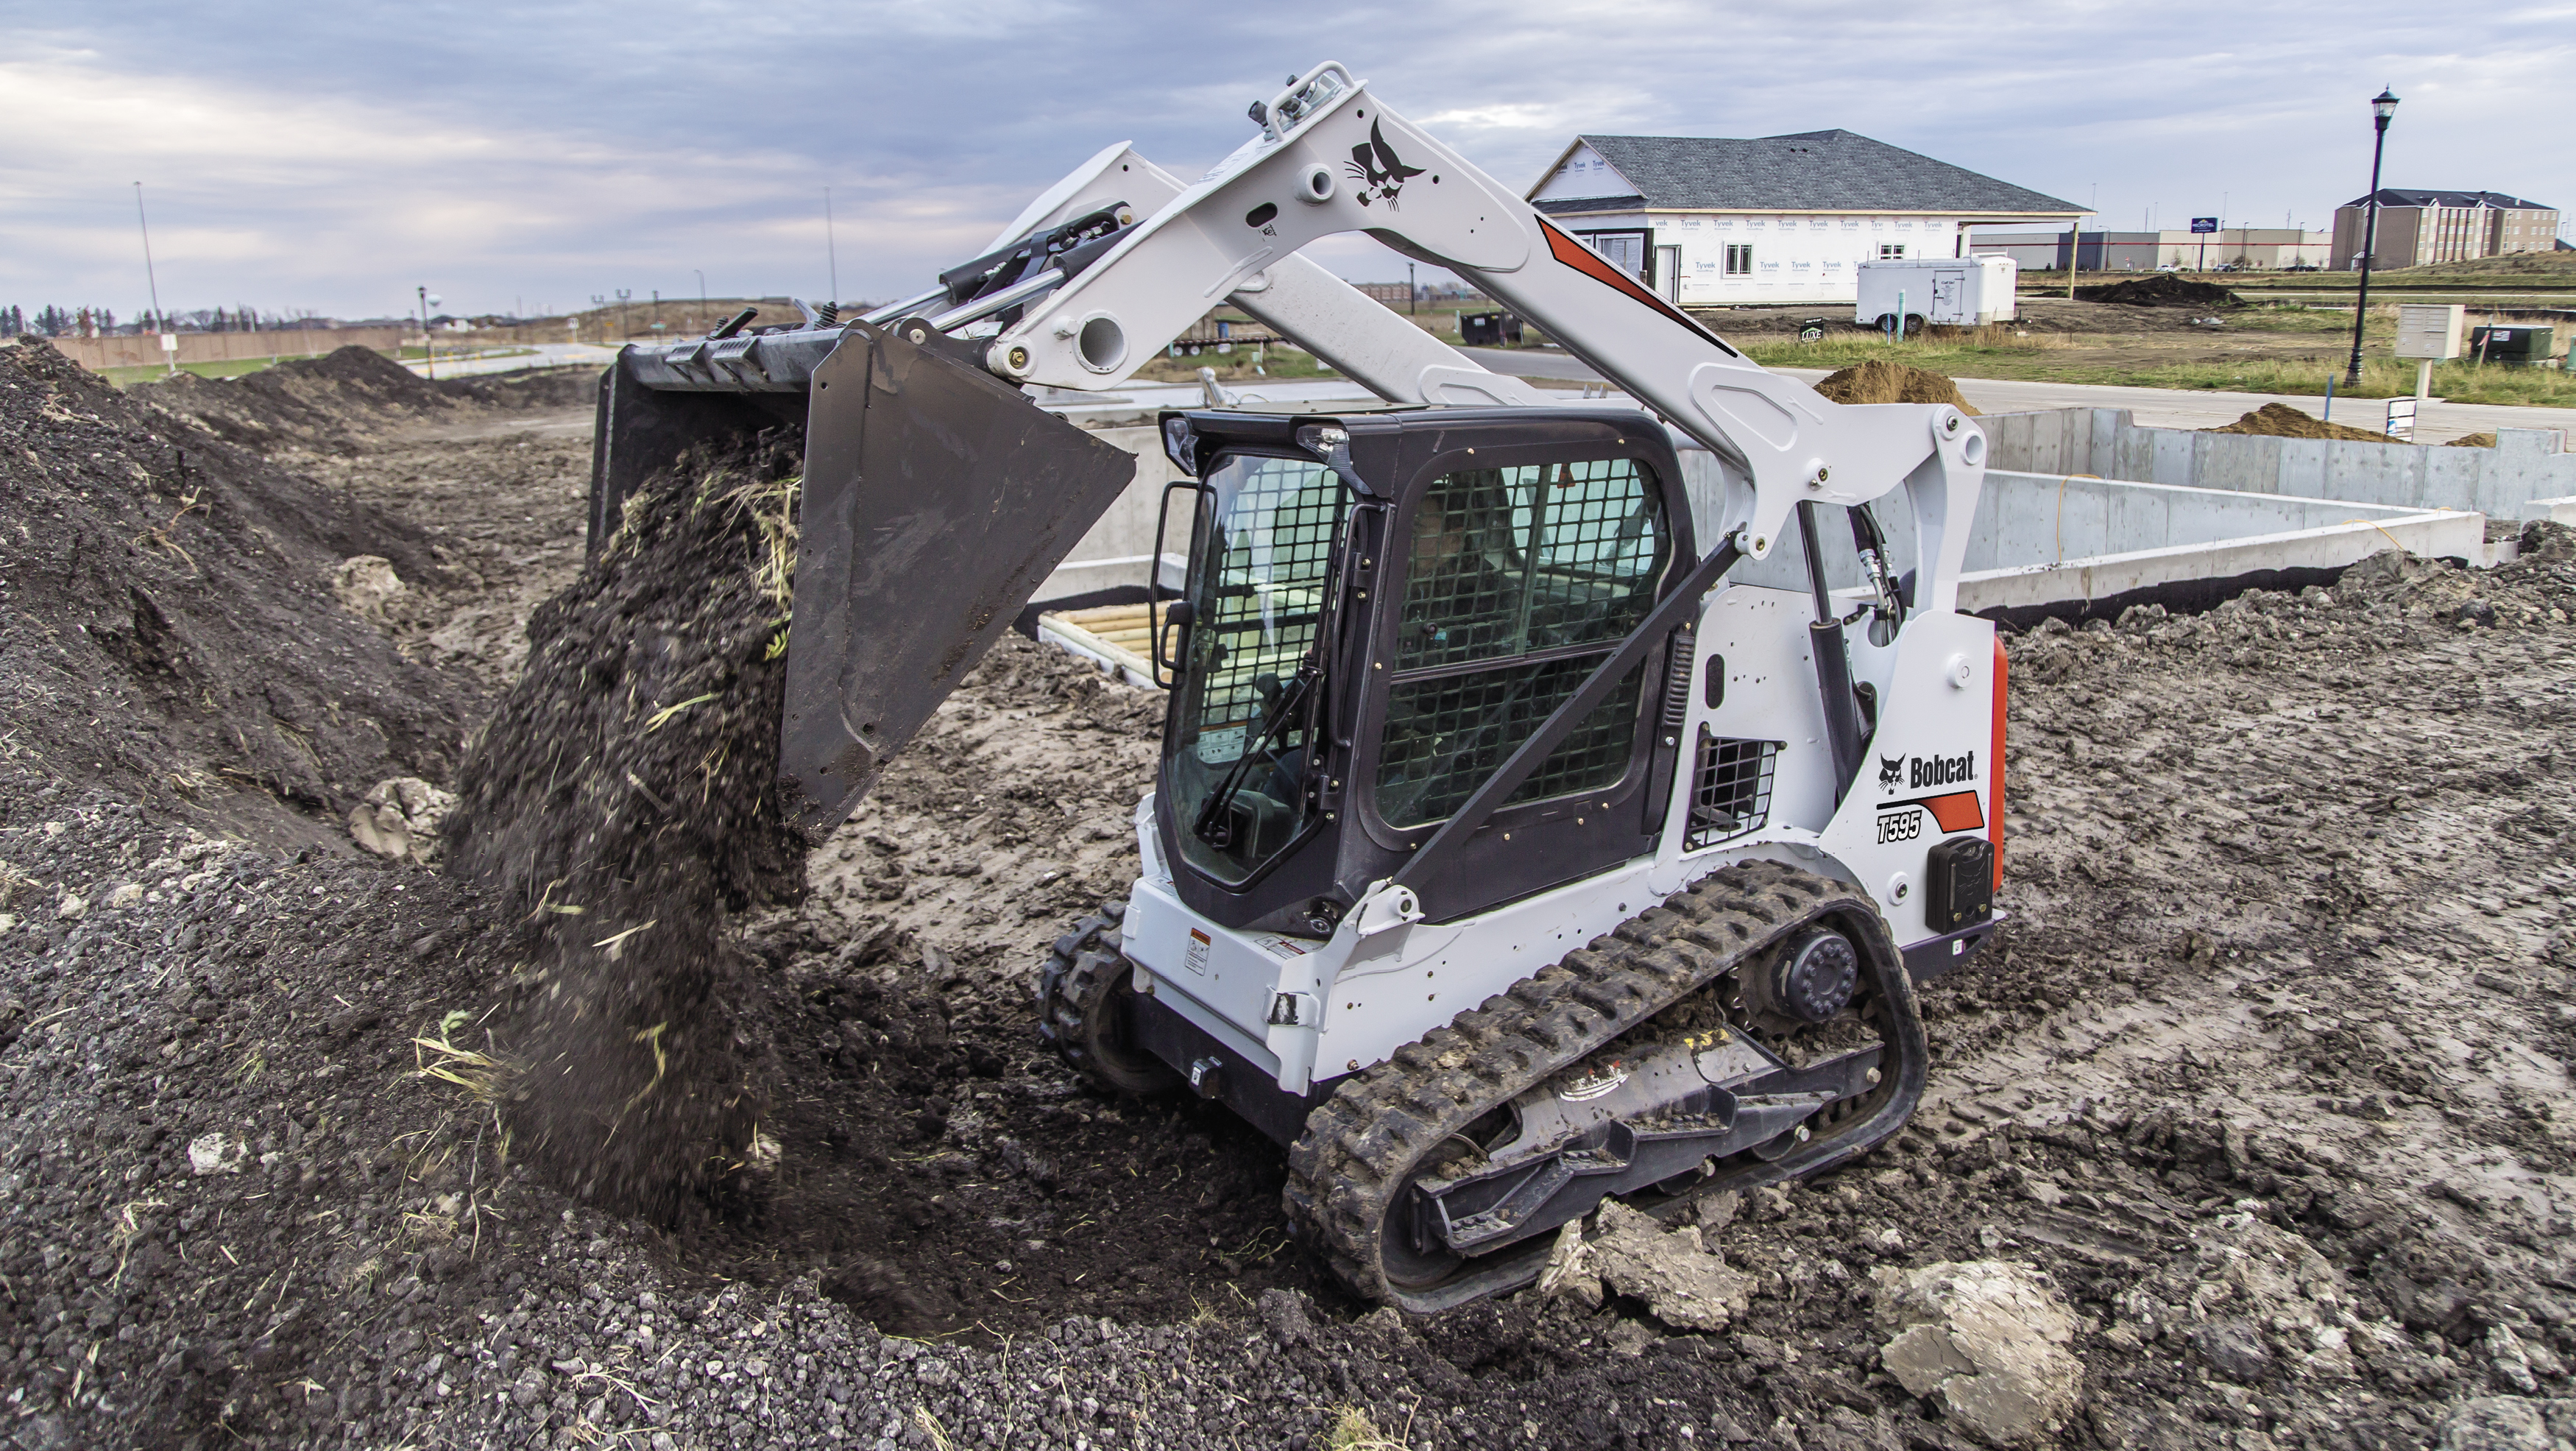 Bobcat T595 compact track loader dumping dirt on construction site